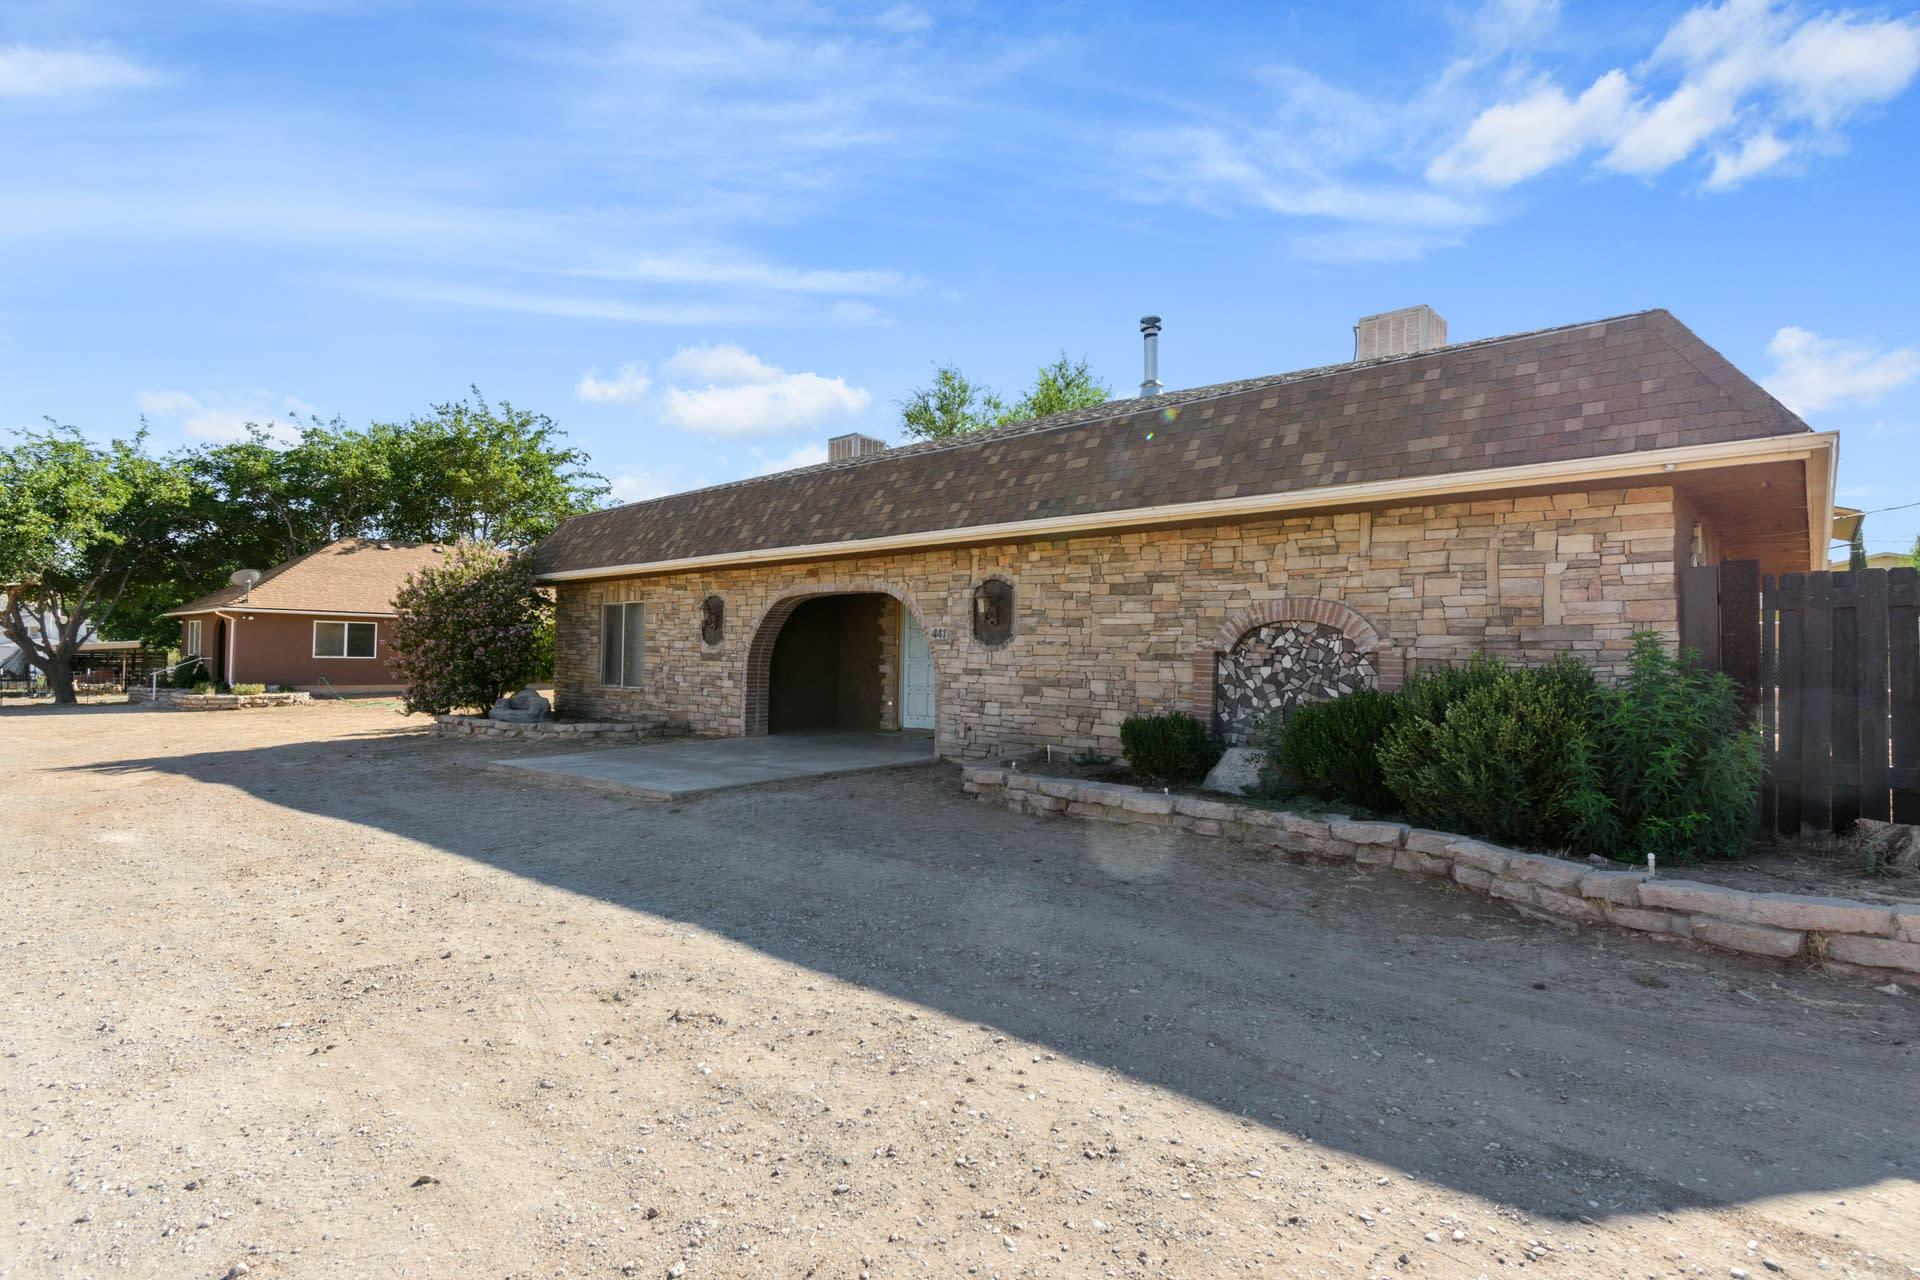 441 W Center, La Verkin Ut 84745